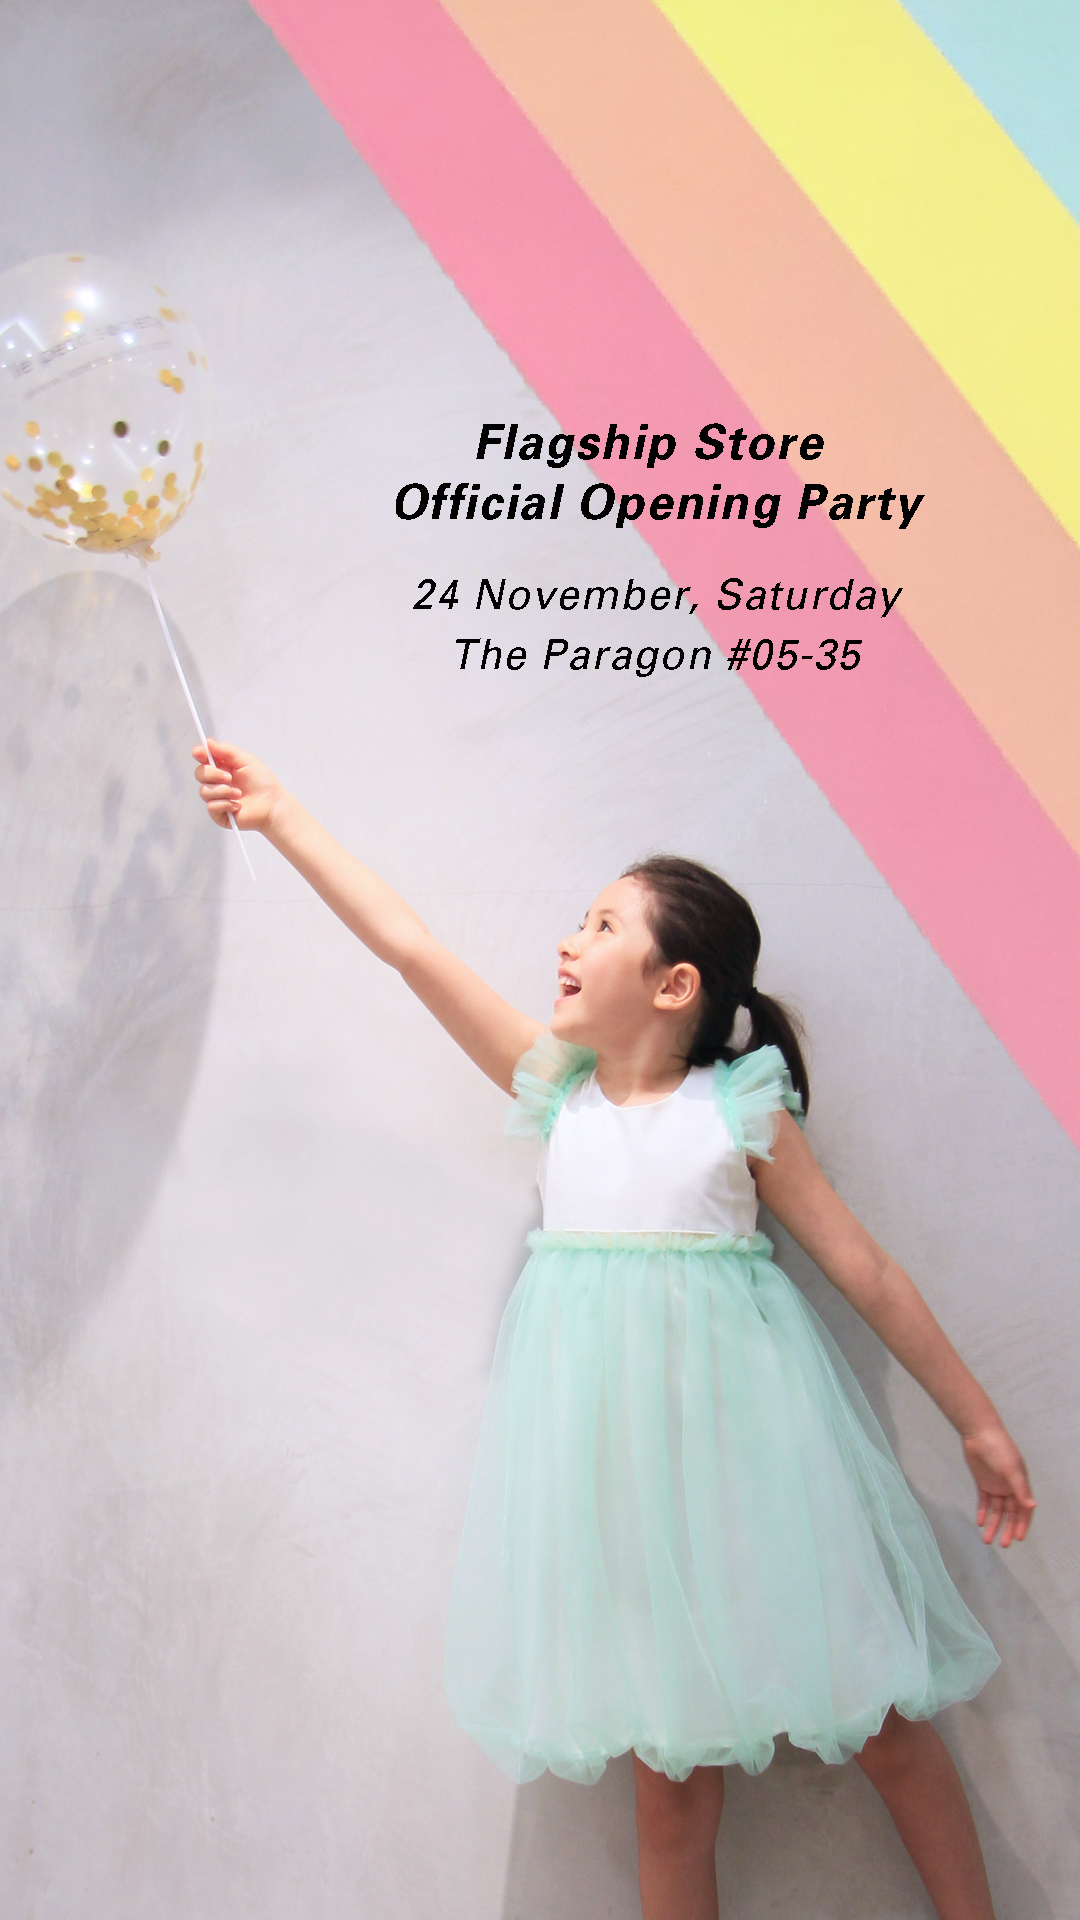 Le Petit Society Flagship Store Official Opening Party